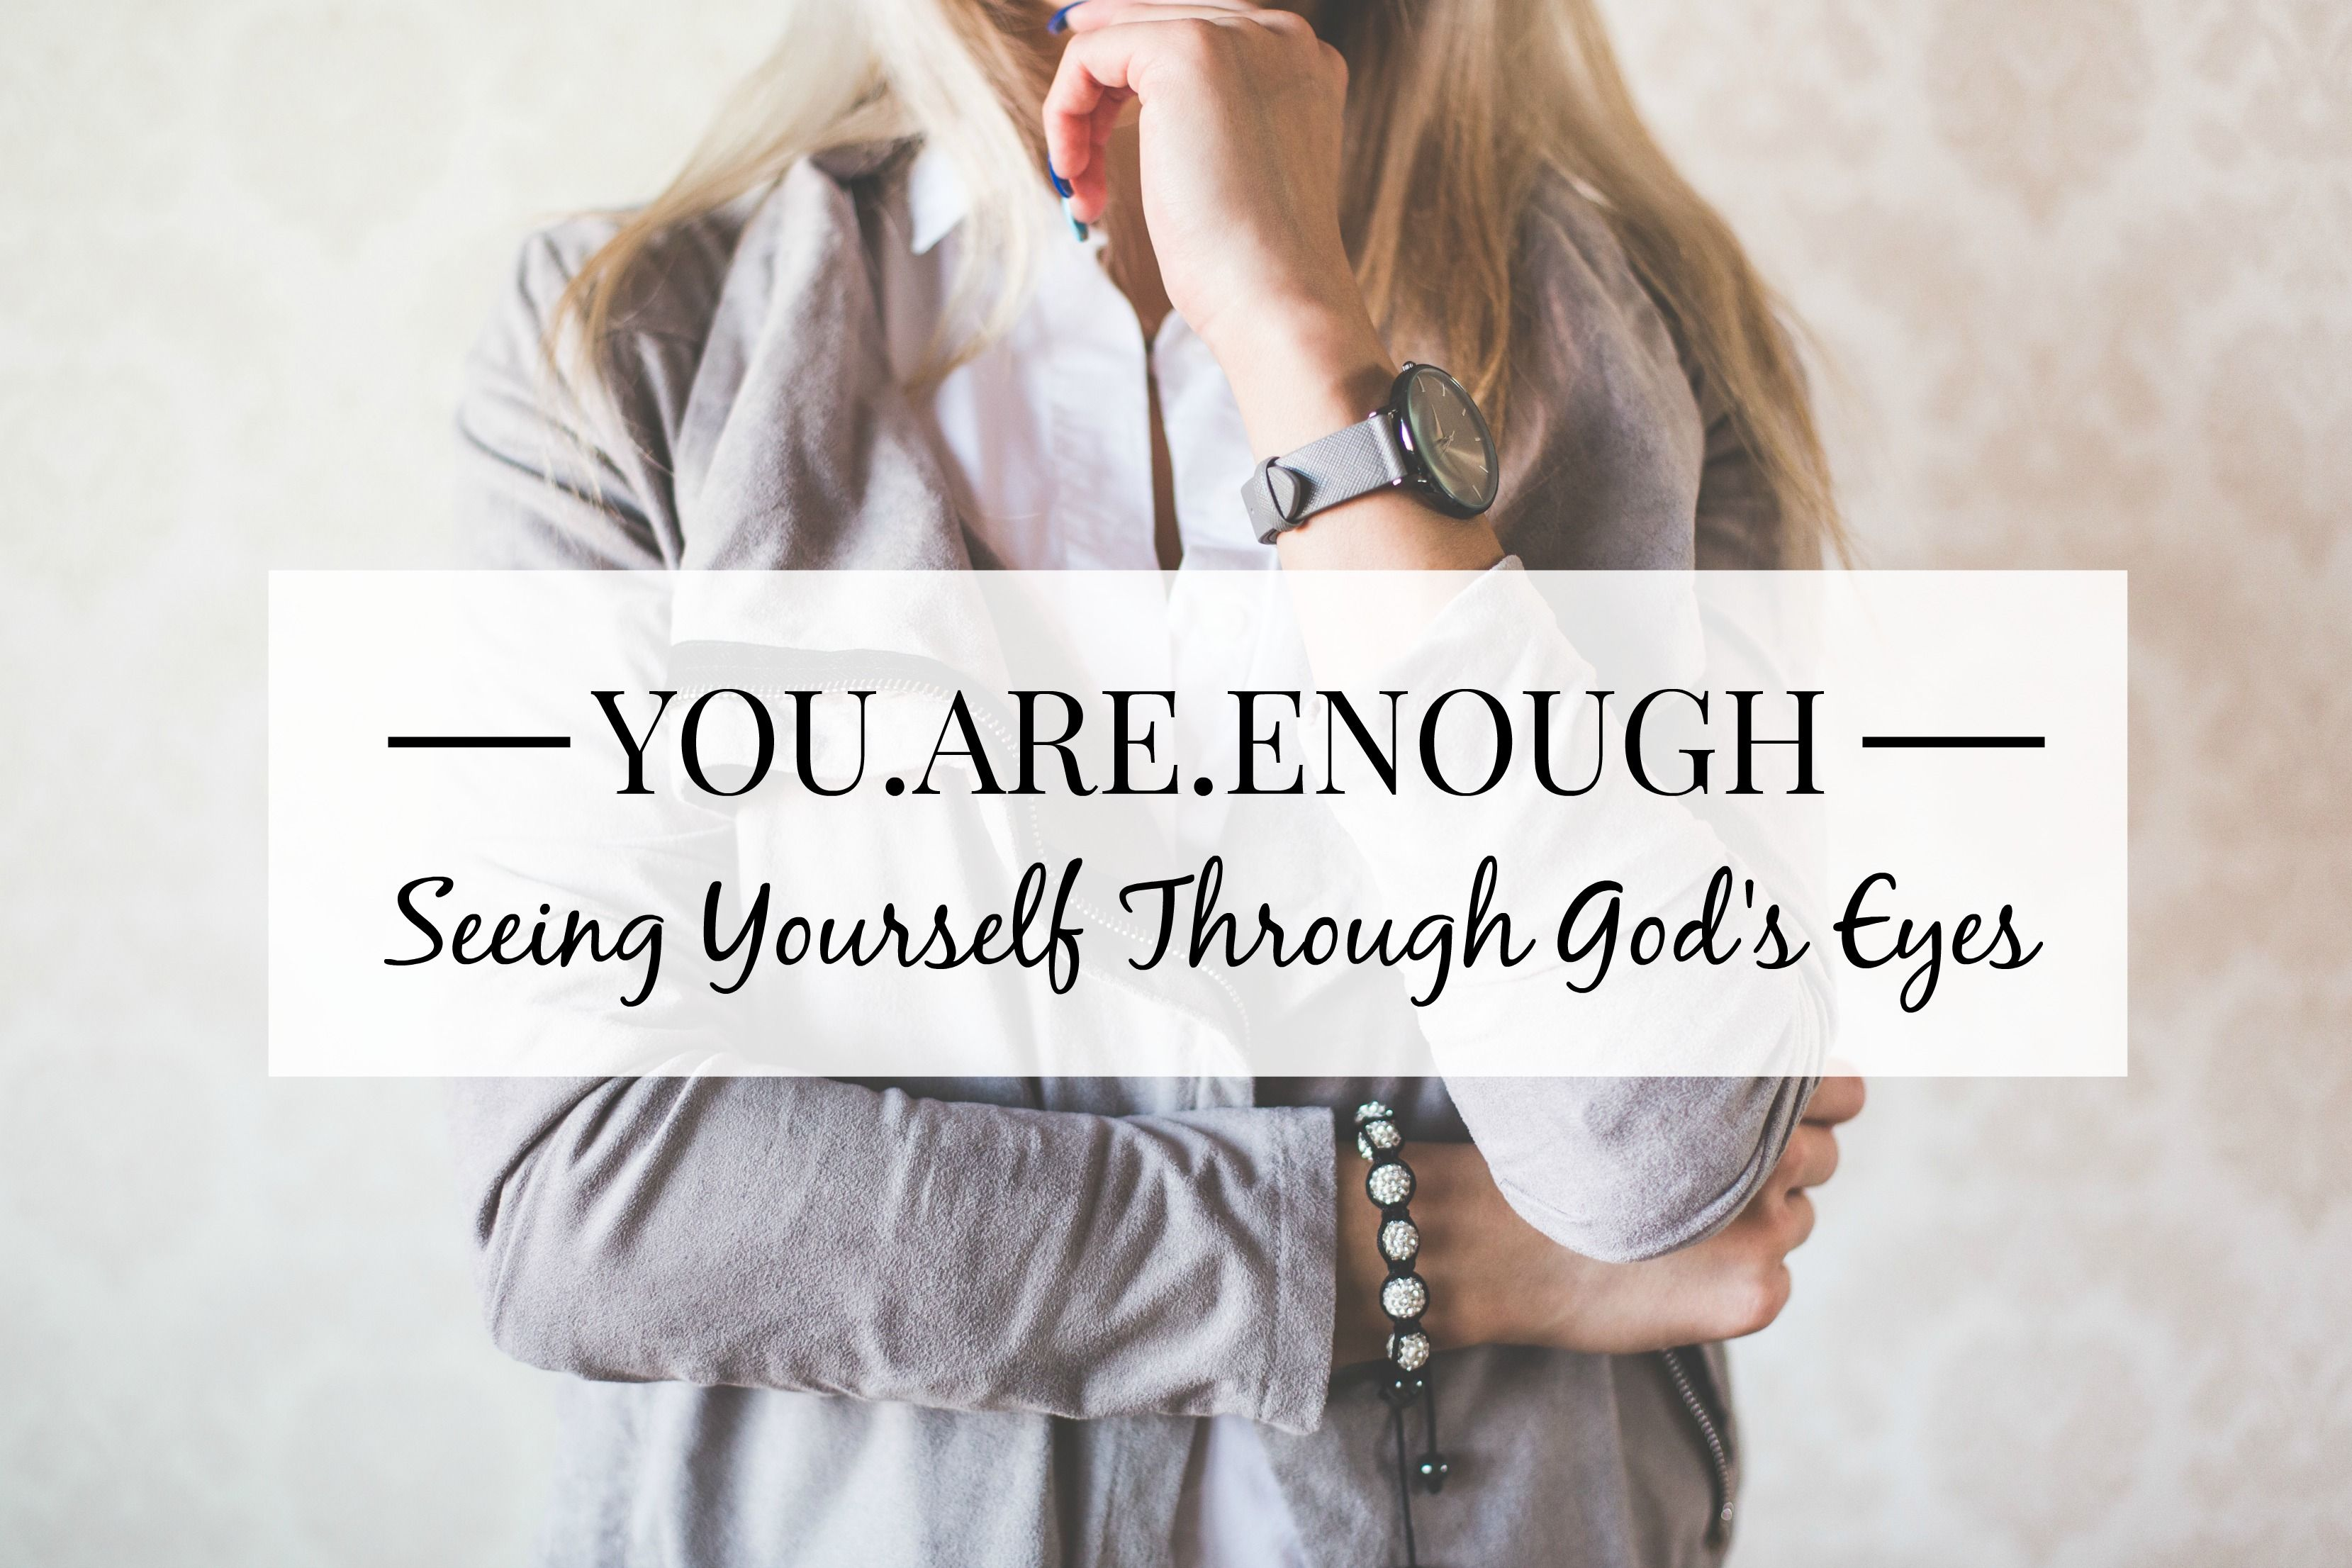 Eleven bible verses that show exactly how God sees us through His eyes. We are loved, beautiful, strong, important, and courageous in God's eyes!